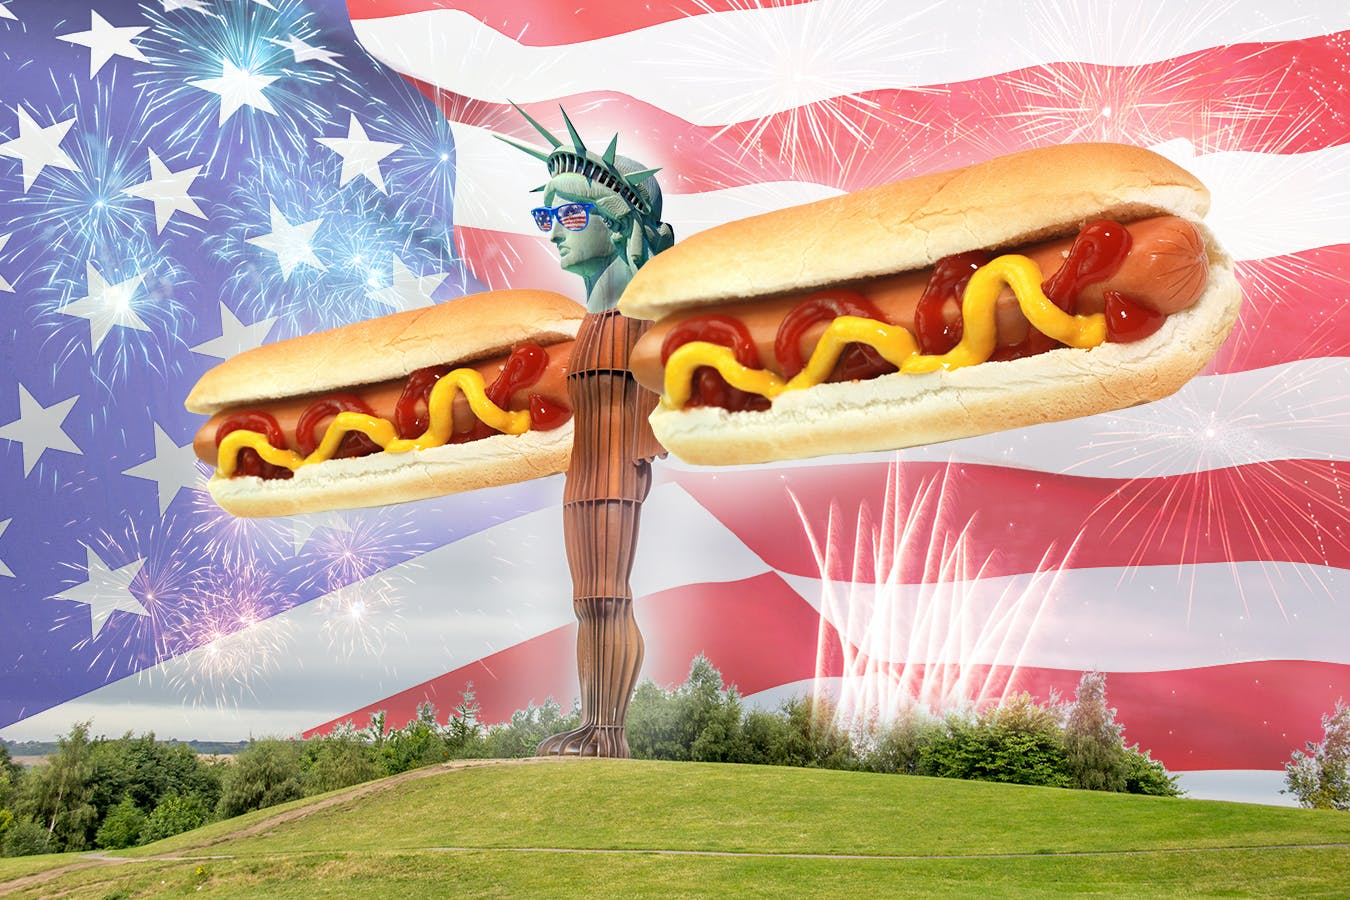 Angel of the north with hot dog arms and the statue of liberty's head wearing sunglasses with the american flag on them and a big american flag is in the background and there are fireworks